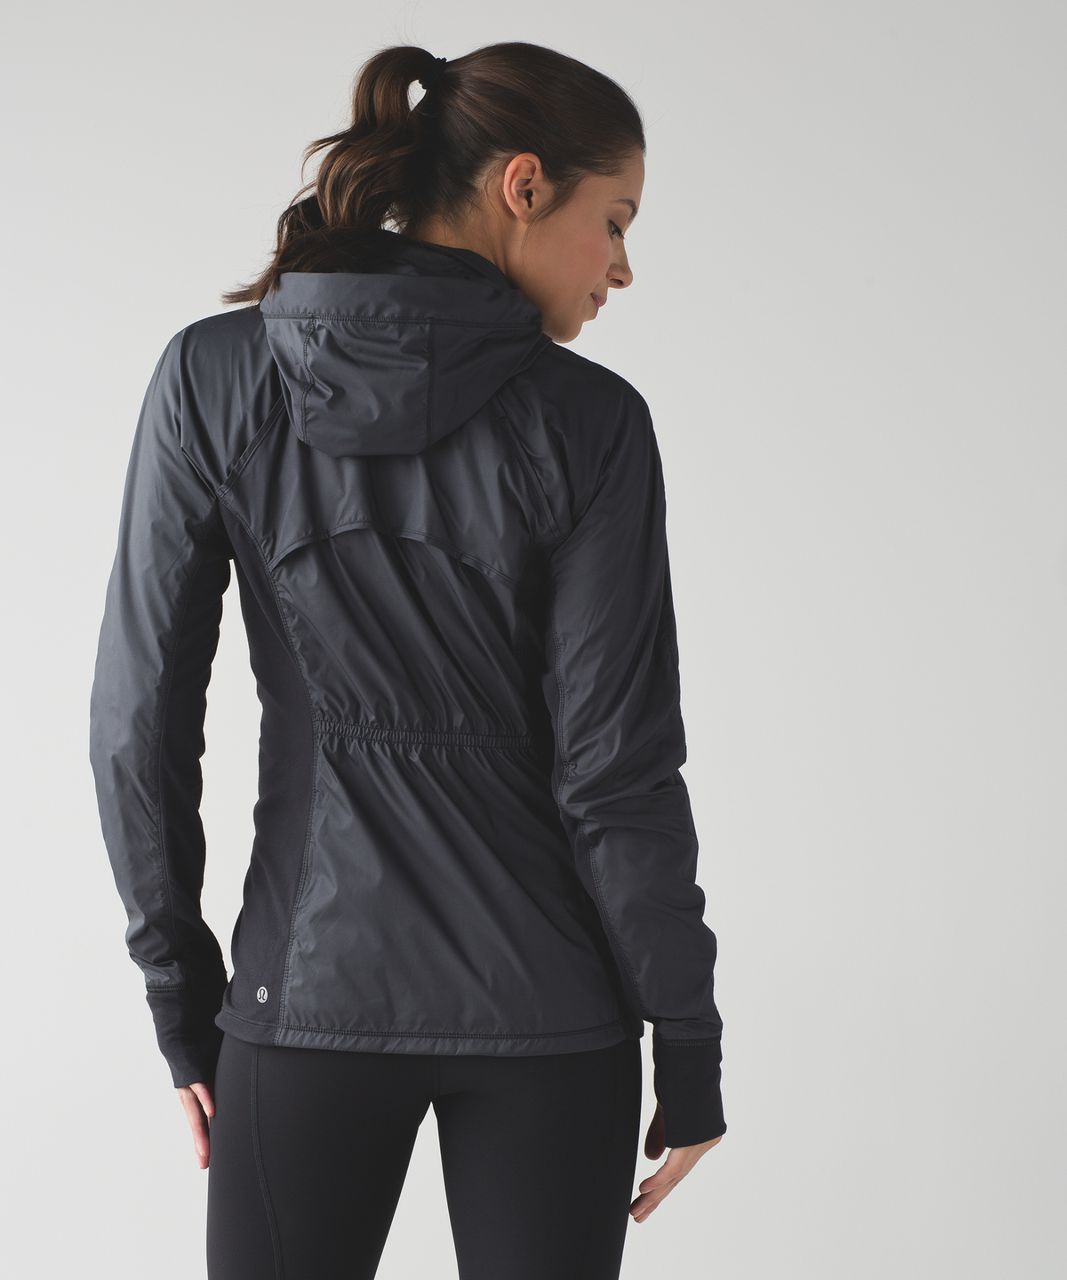 Lululemon Rush Hour Jacket - Black